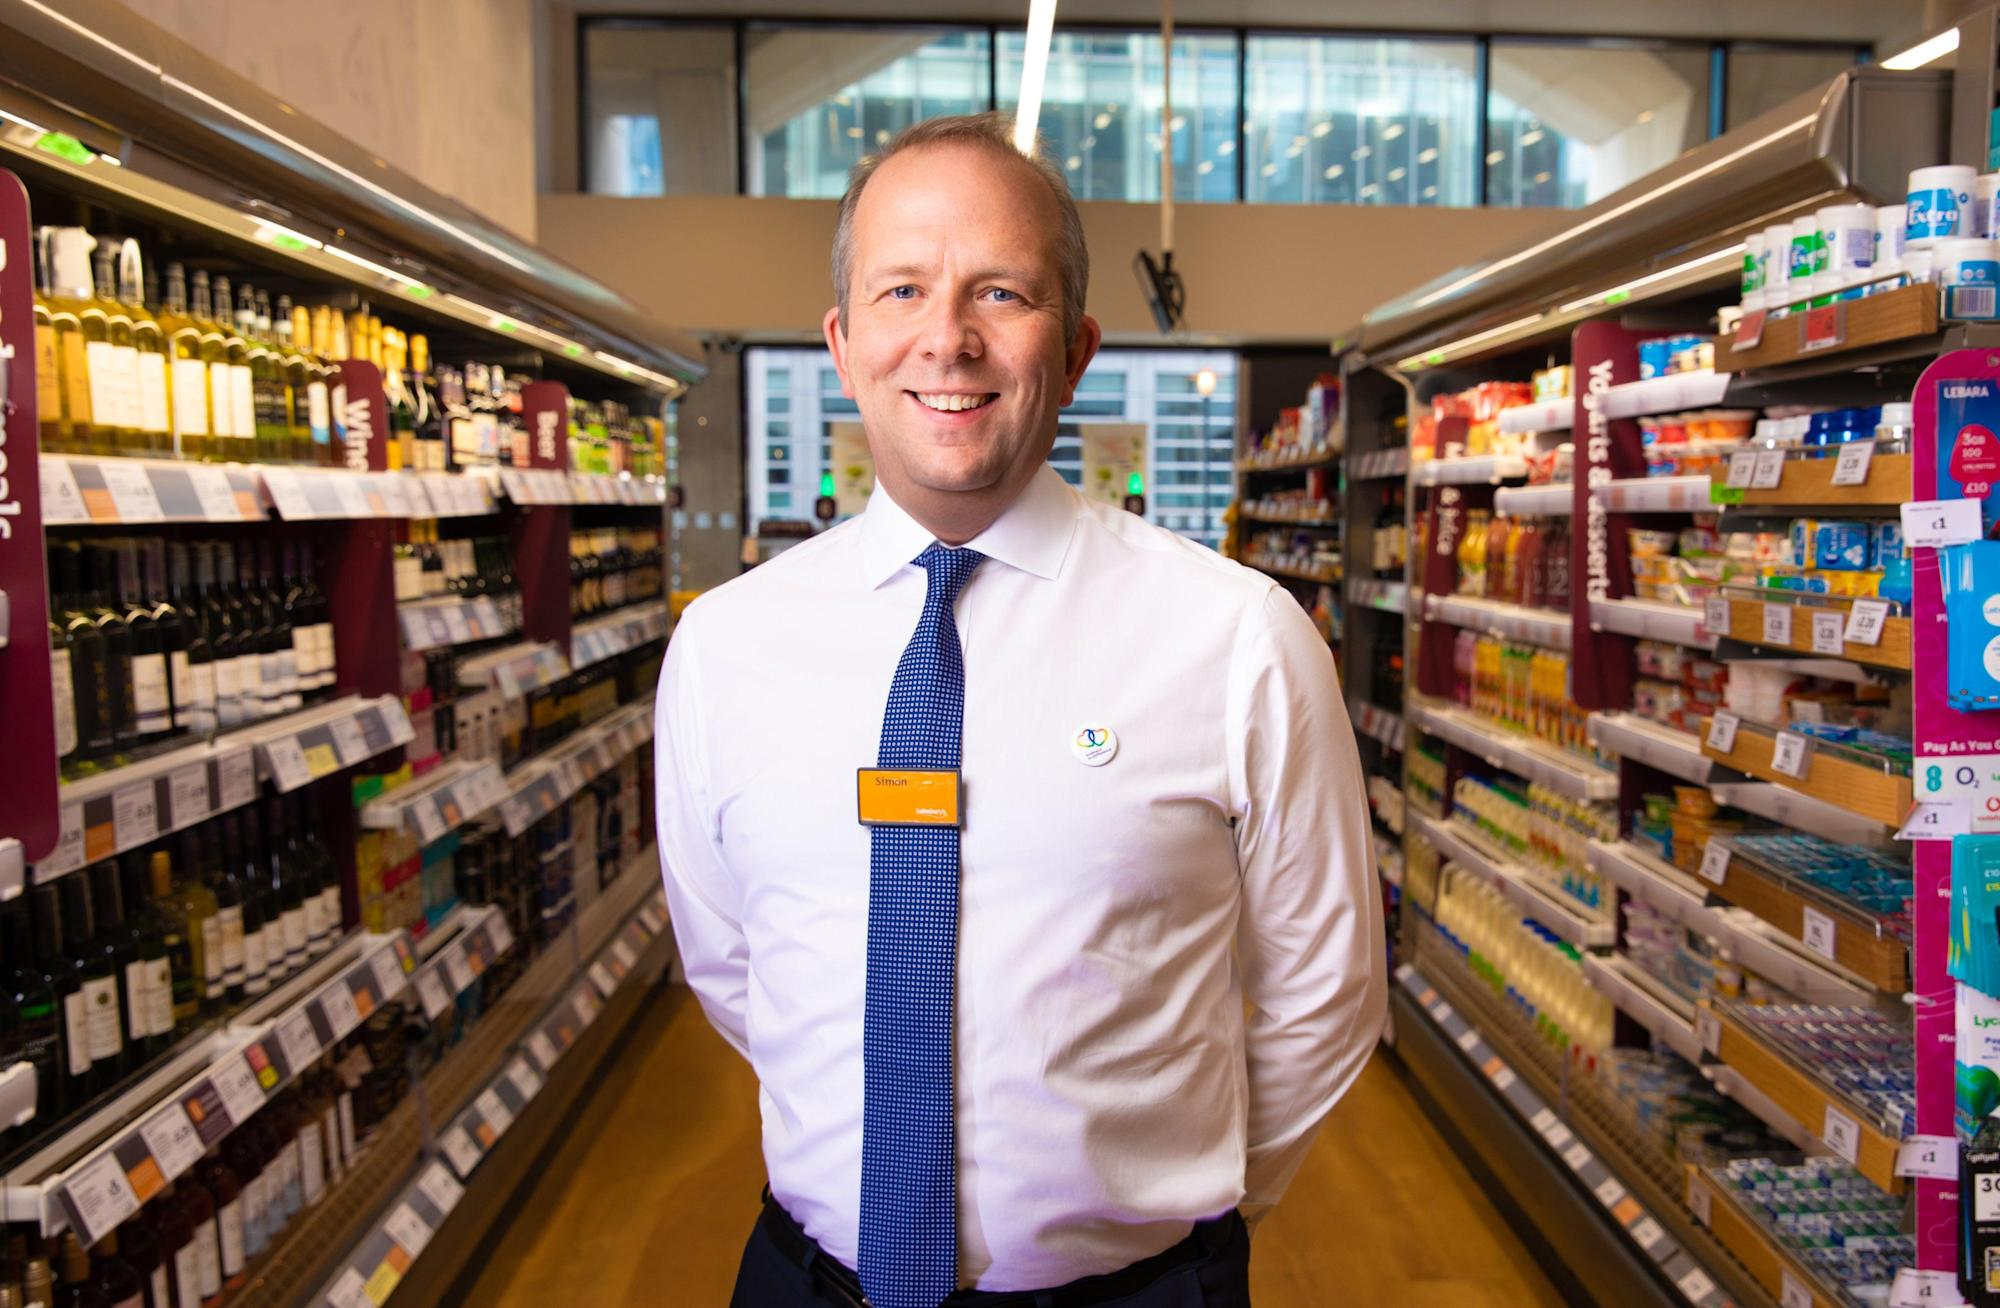 Sainsbury's shrugs off takeover talk - but faces questions over disappearing game pie